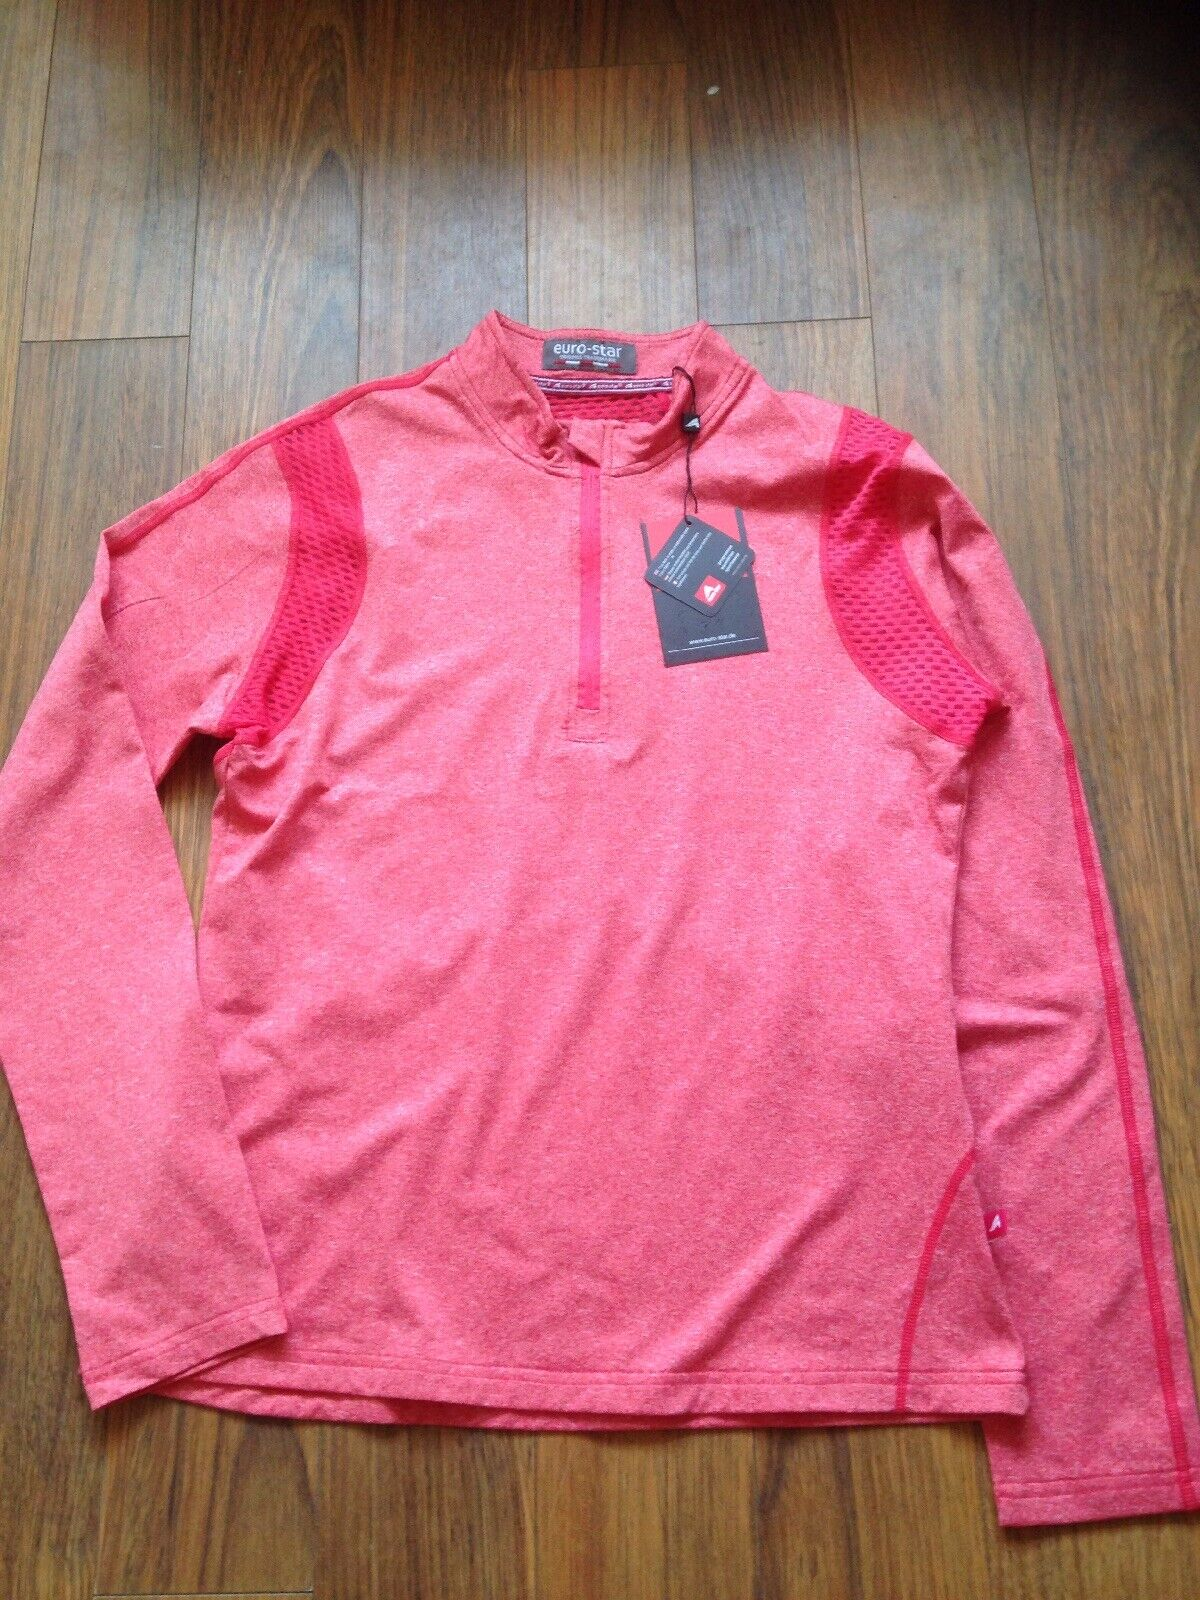 EURO-STAR Equestrian Riding POLINA Technical SHIRT Top Base Layer MEDIUM New